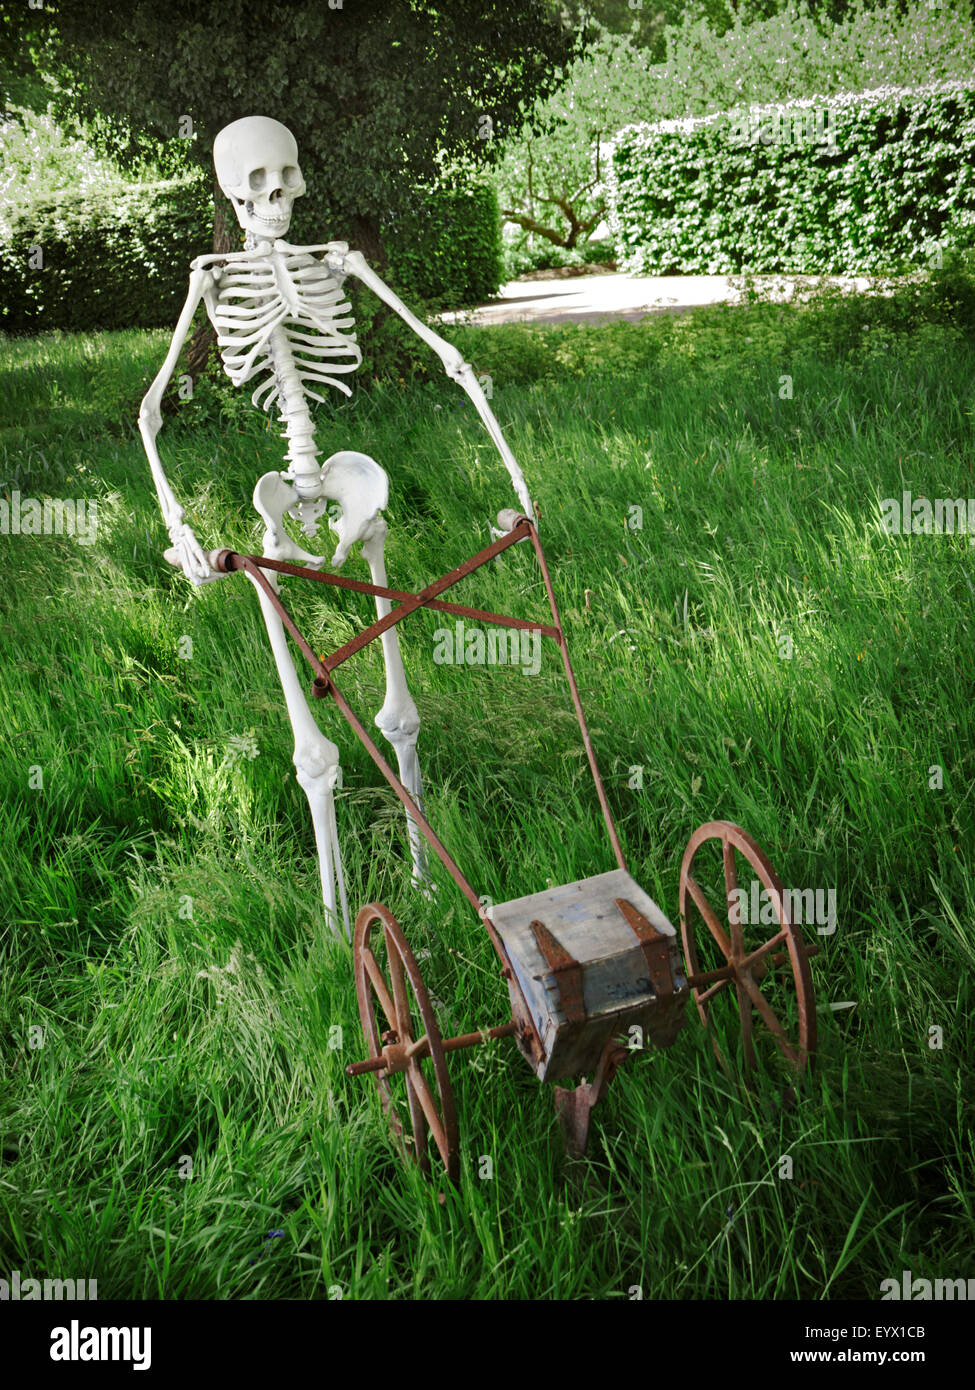 Quirky sculpture of skeleton mowing grass in an overgrown for Long grass in garden